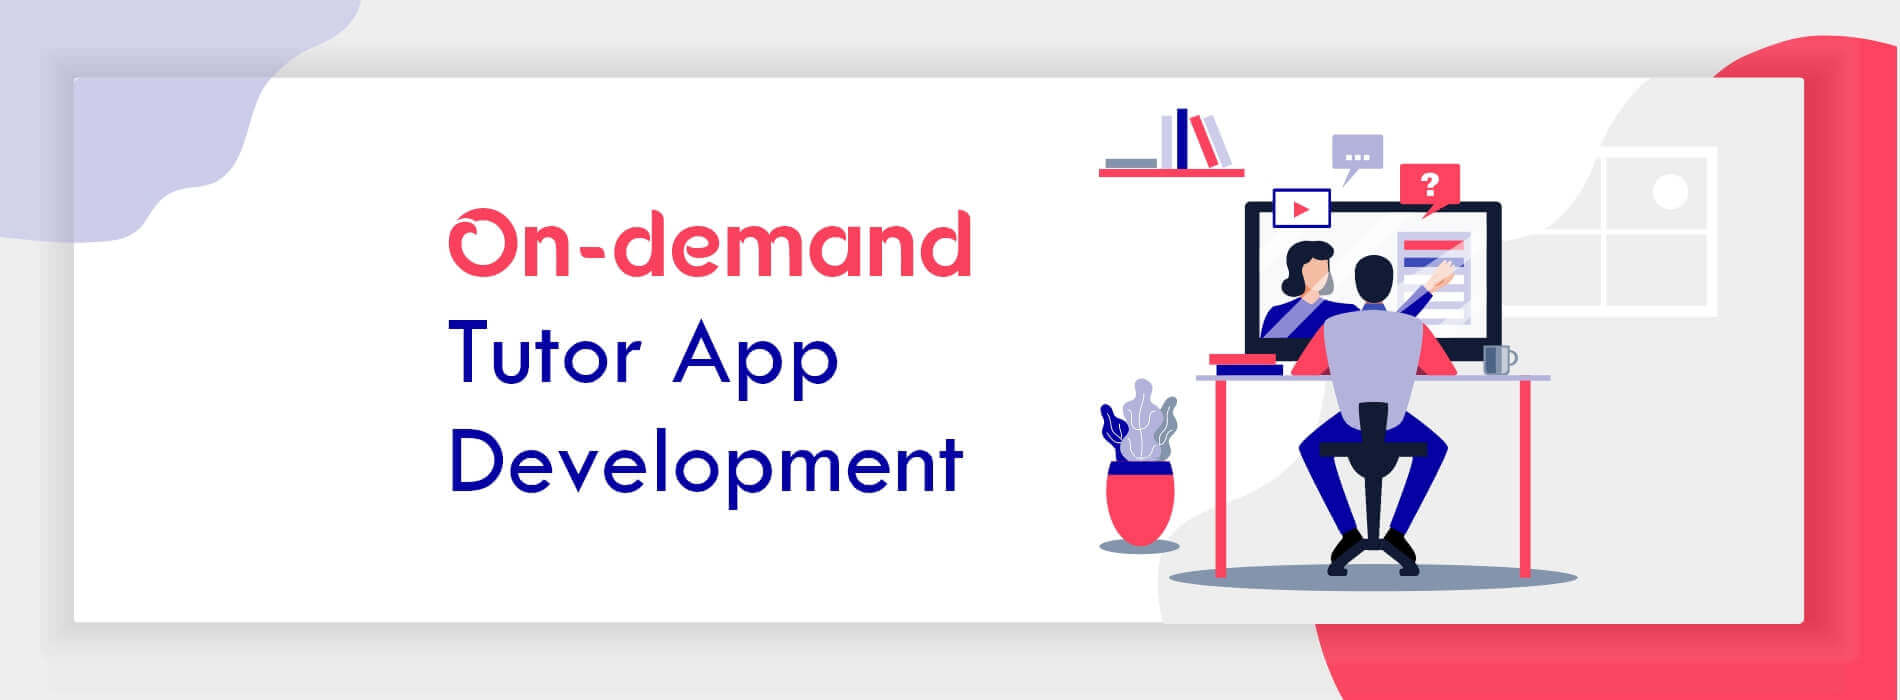 On-demand Tutor Finding App Development: Cost and Key Features